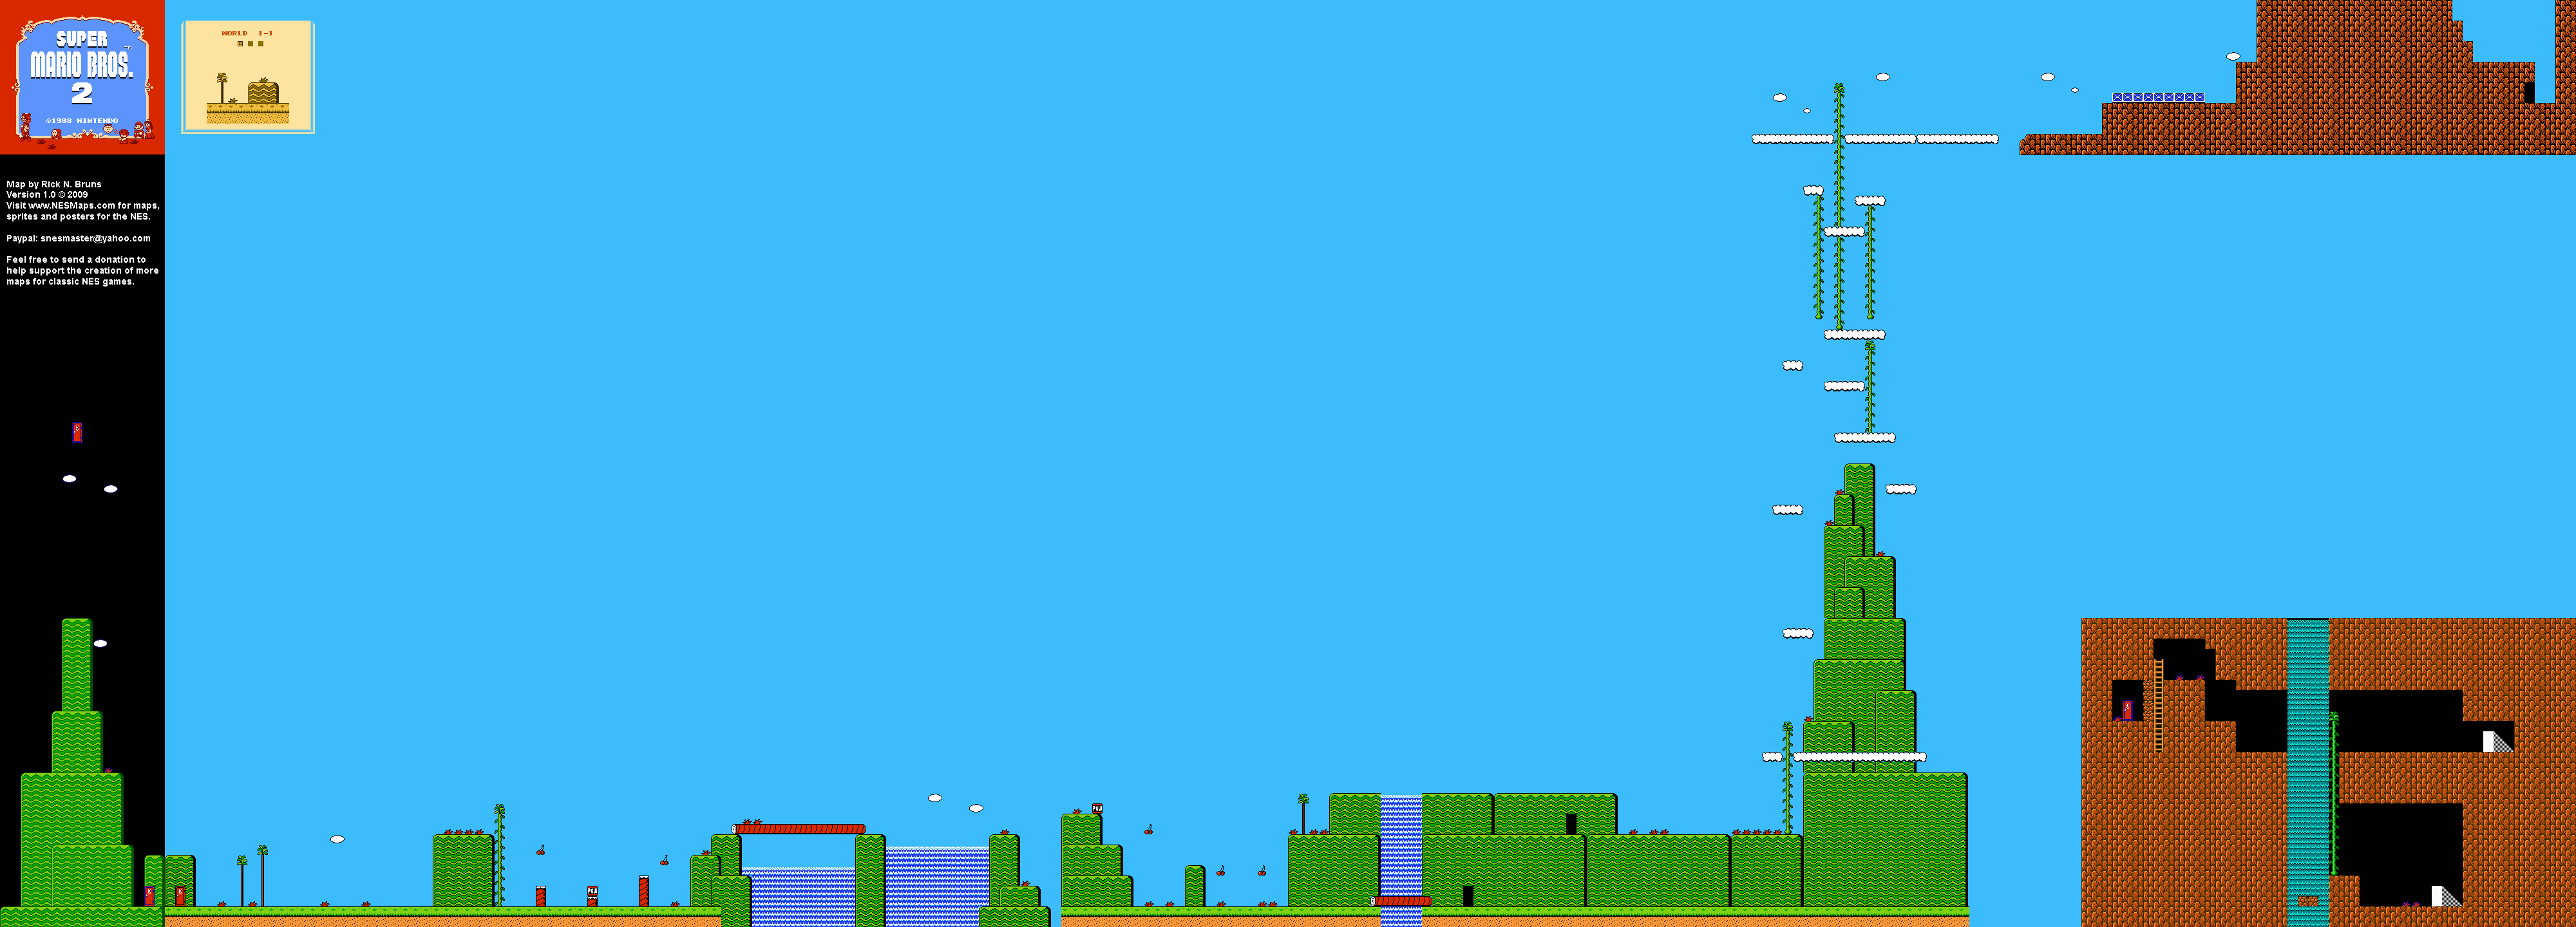 Mario Brothers Background Super Mario Brothers 2 World